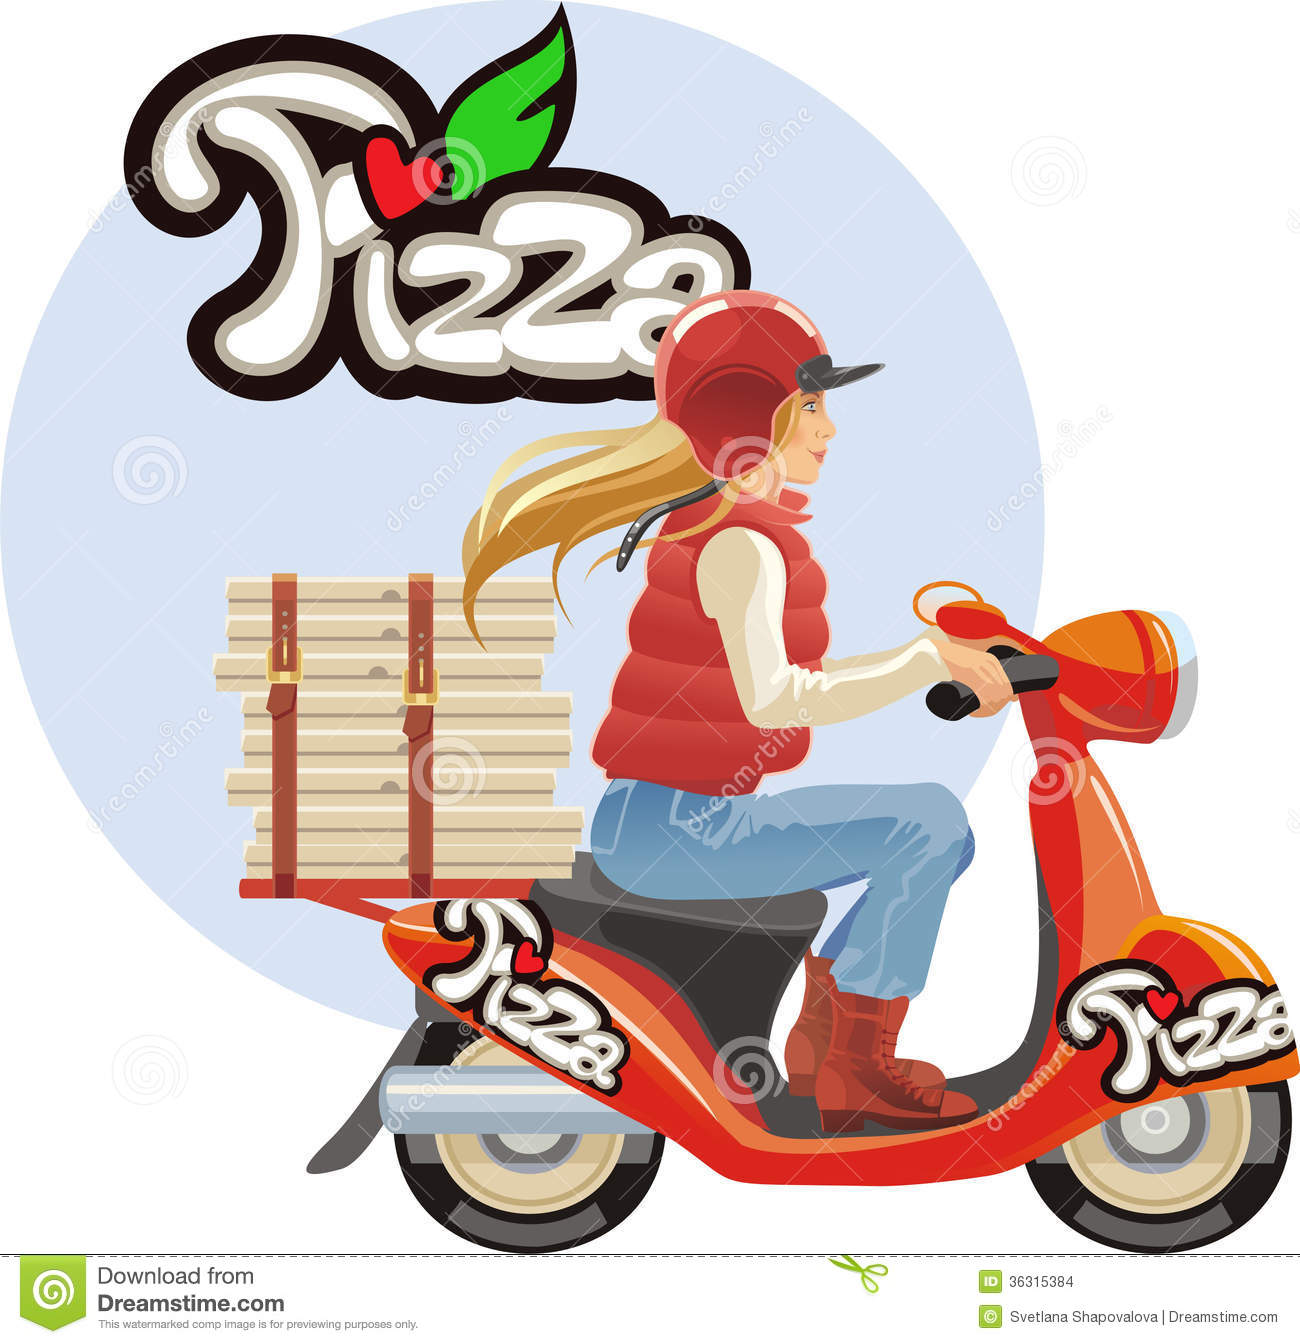 Pizza delivery girl anal sex clip